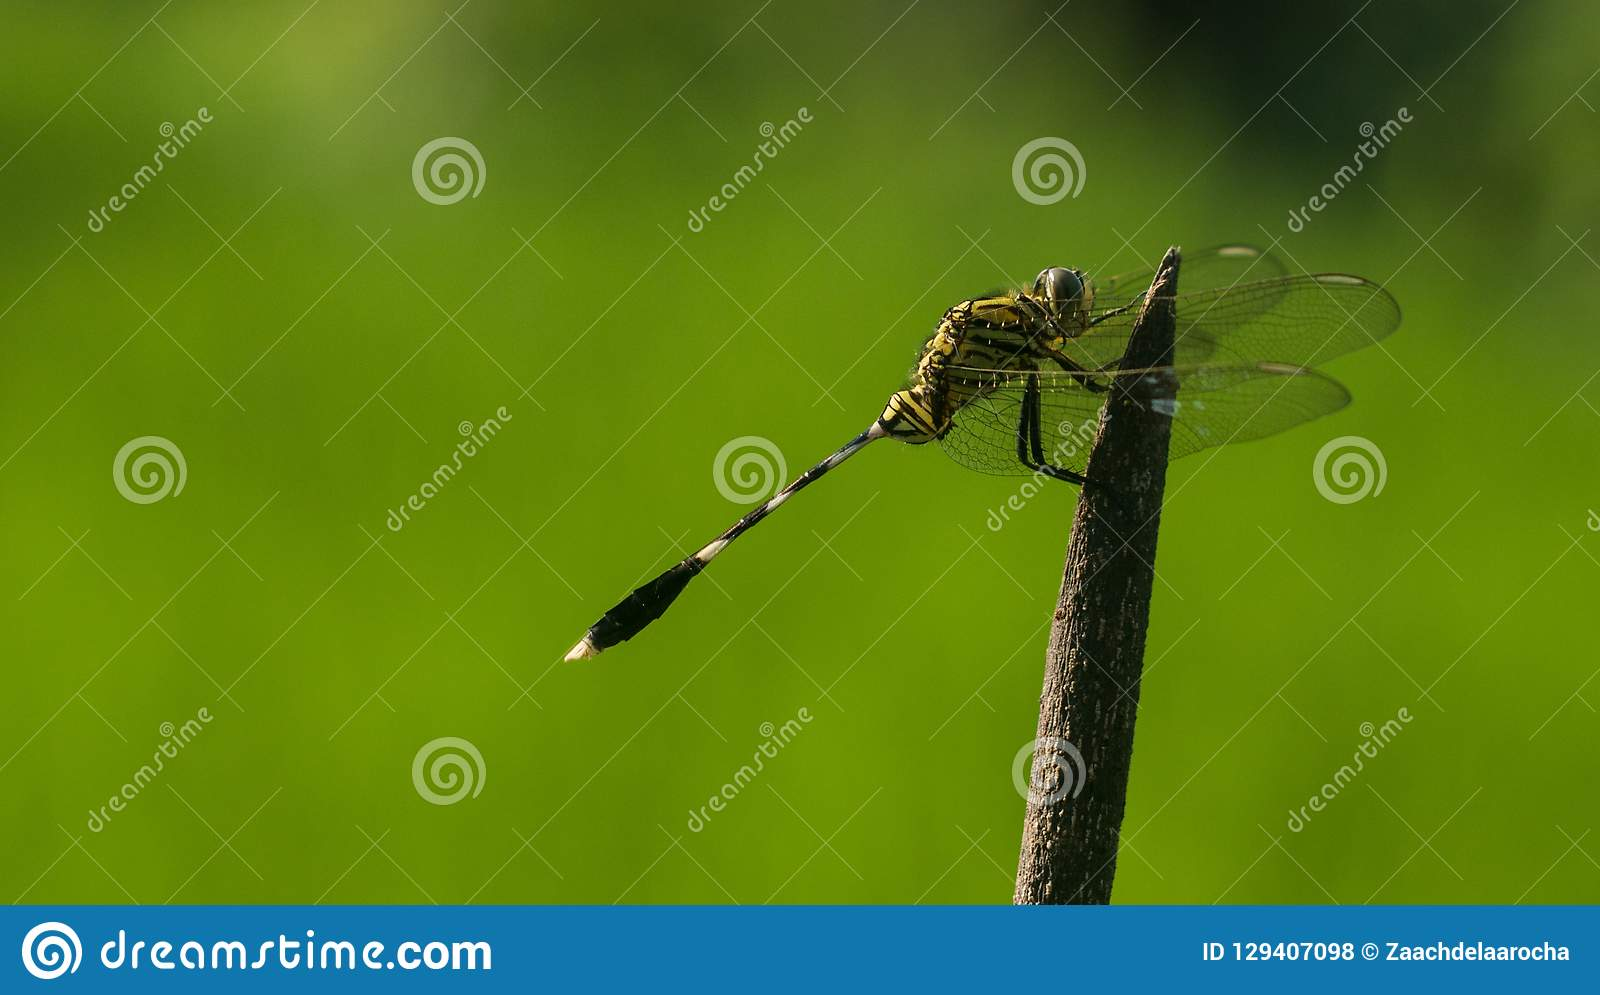 An orthetum dragonfly sabina on a pointy branch